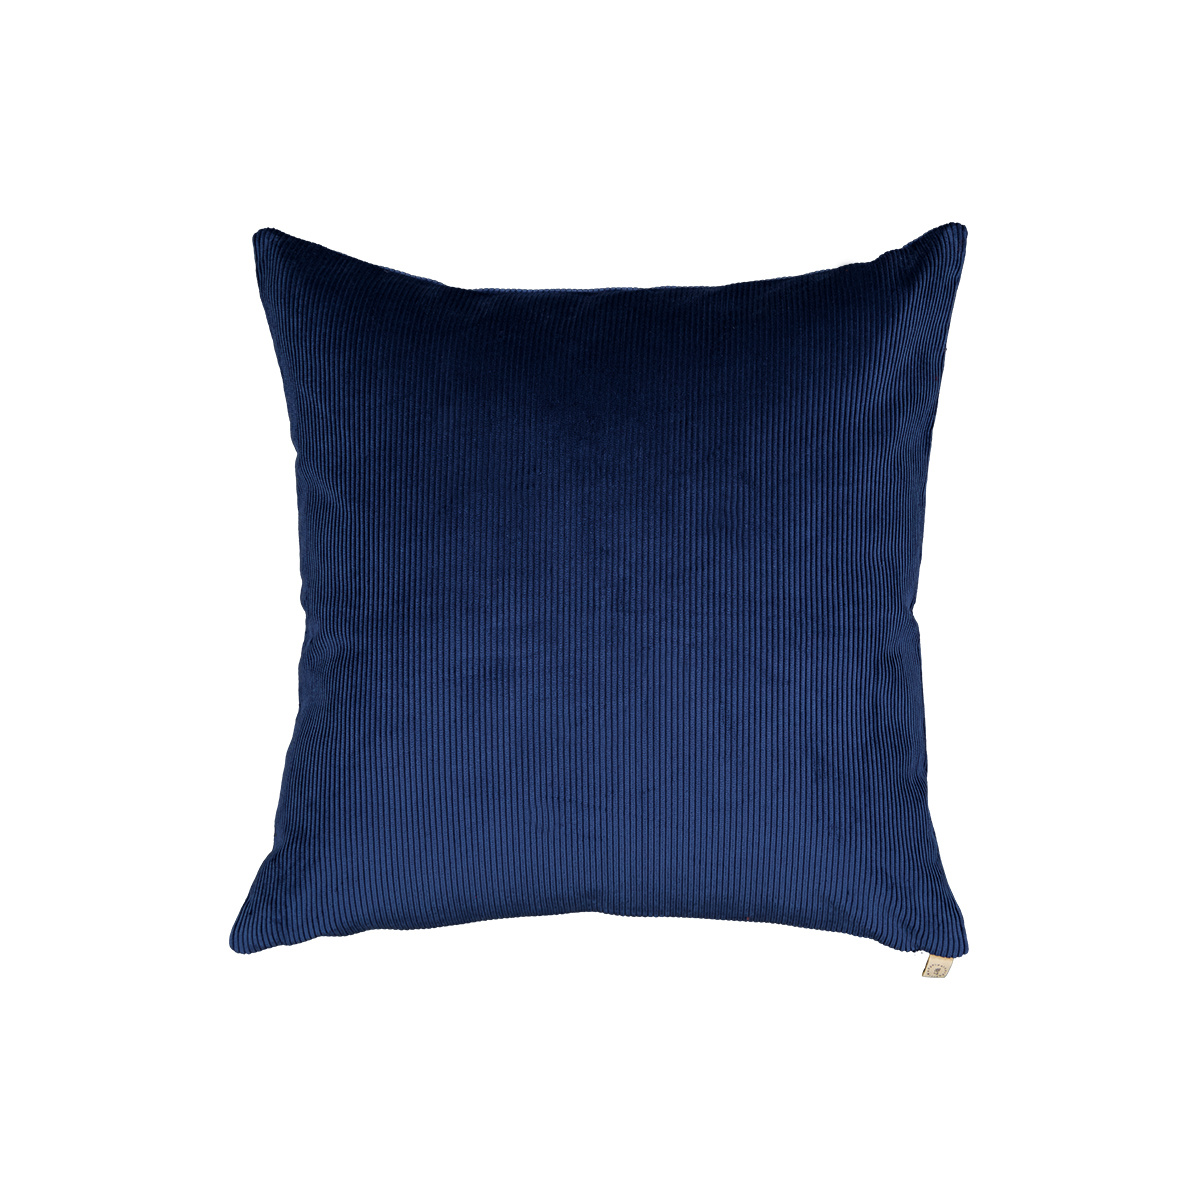 Carino navy blue corduroy cushion